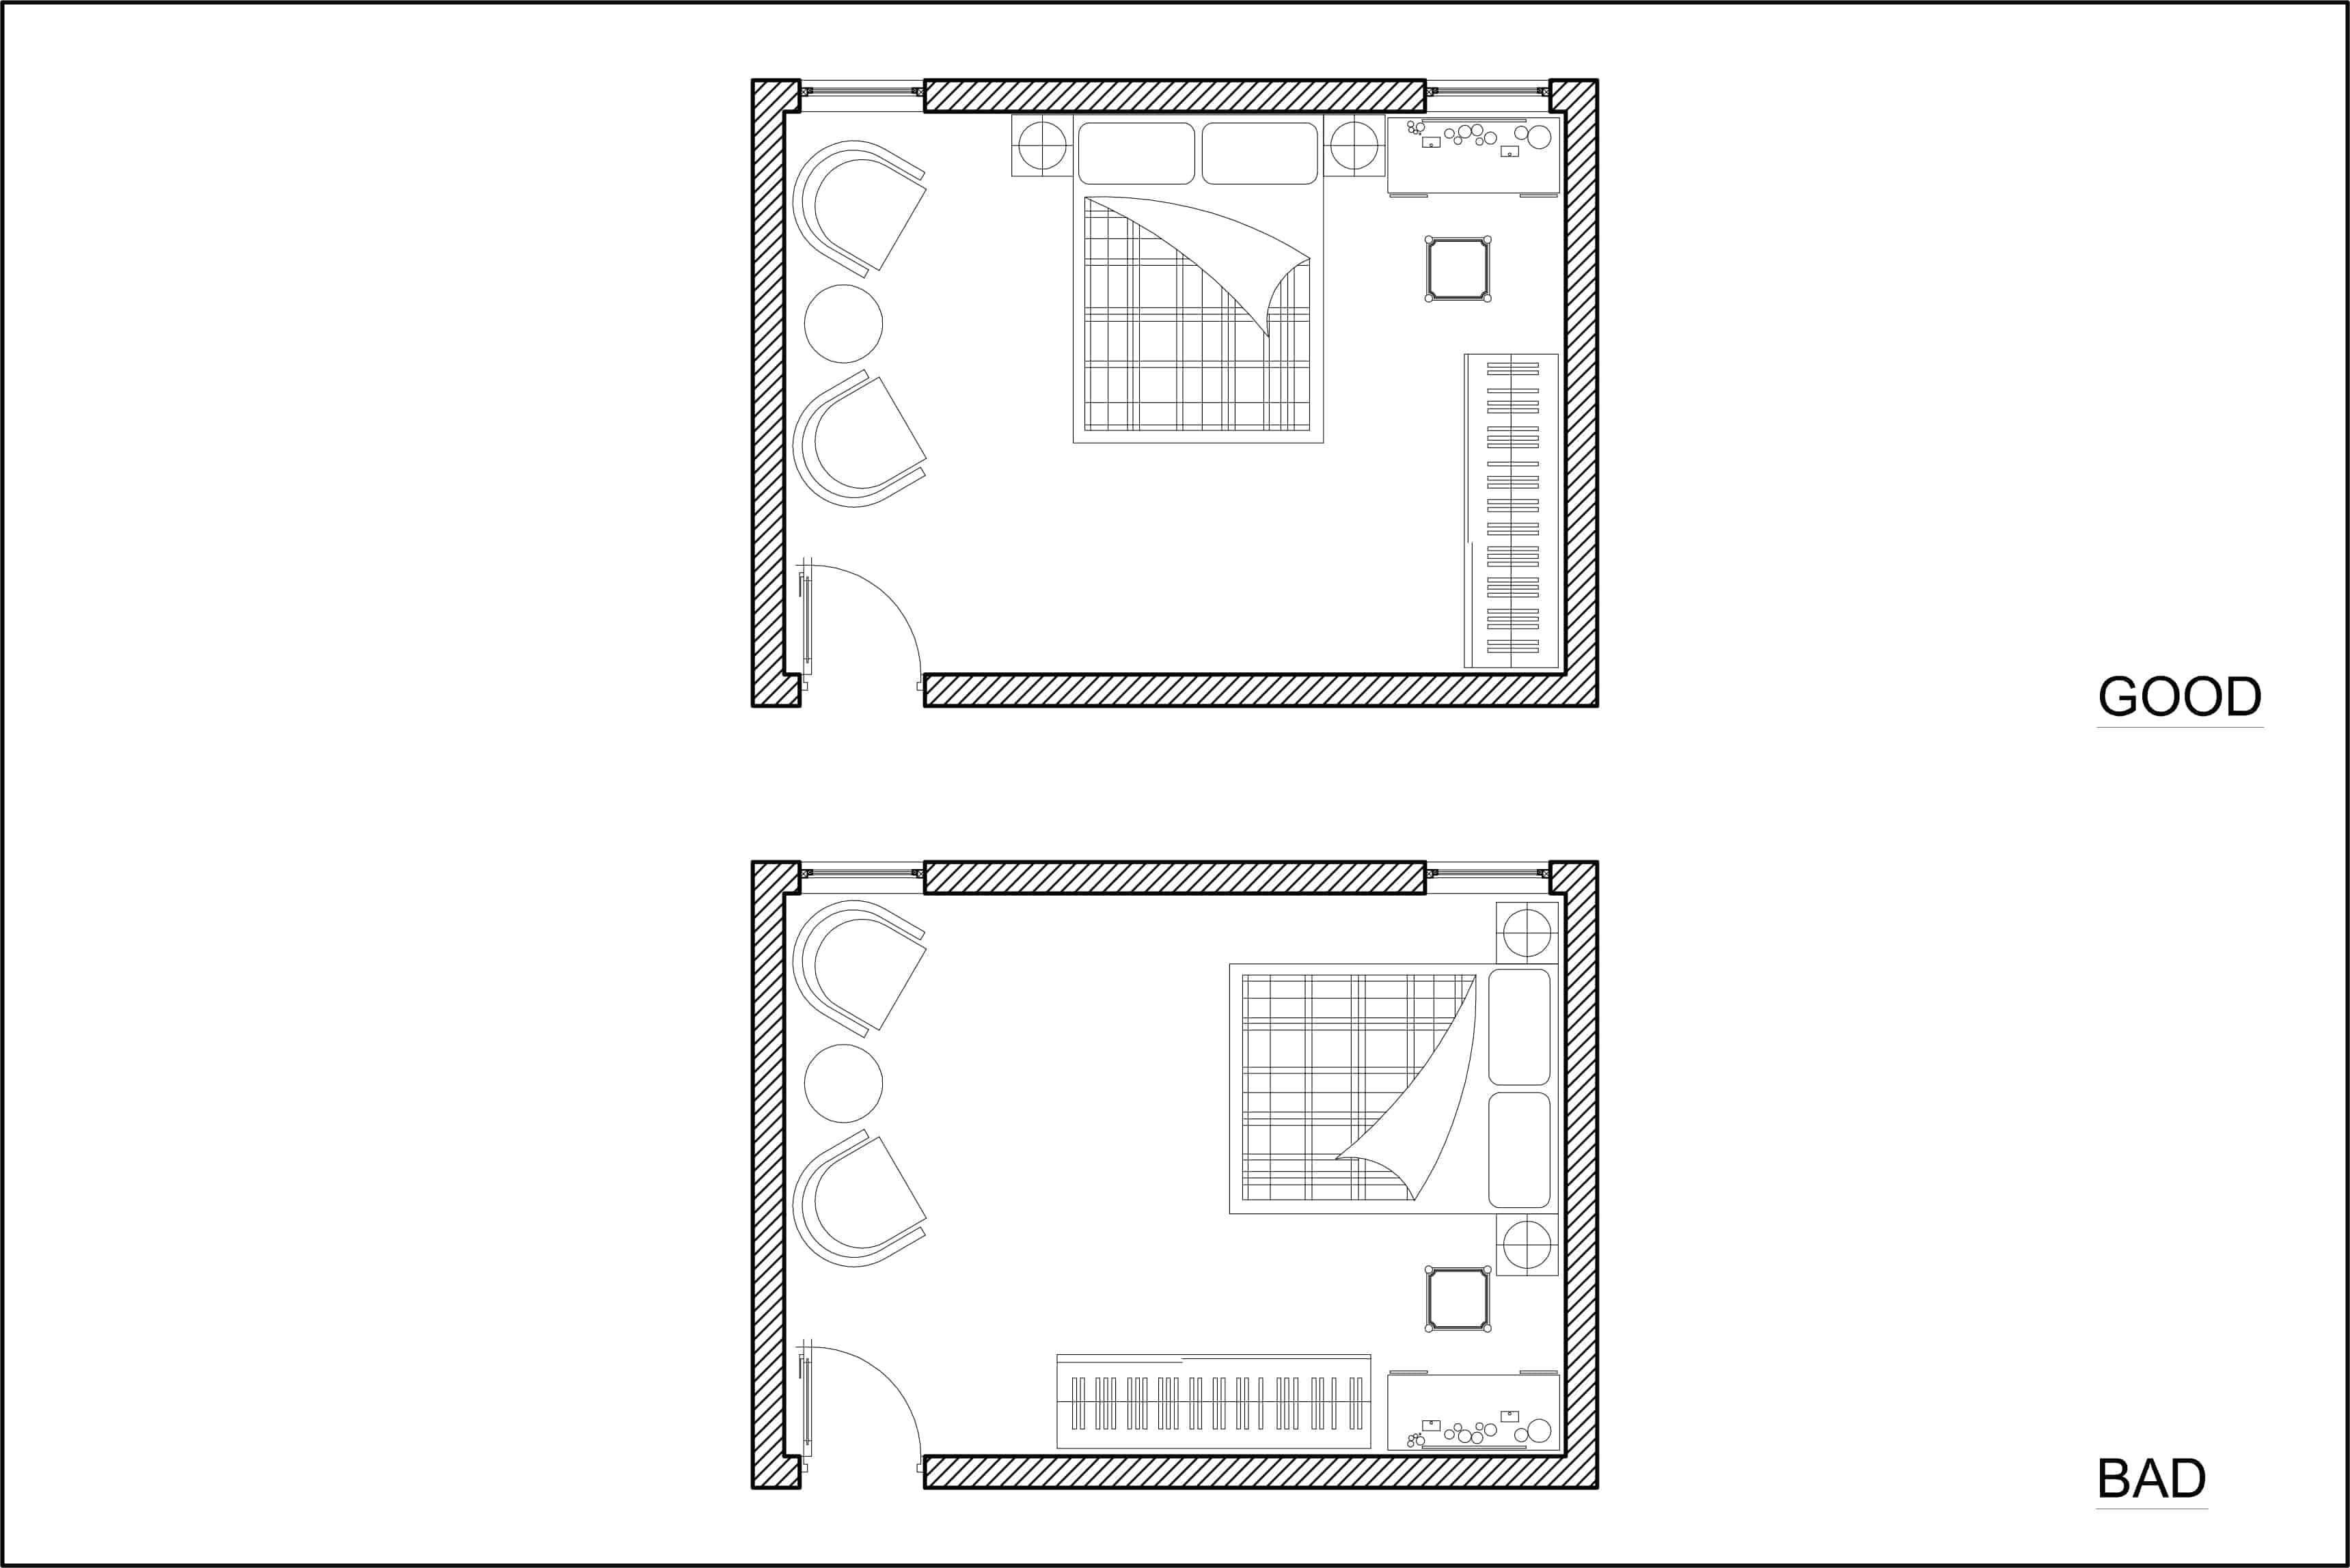 Layout diagram for optimal Feng Shui bed location and orientation in bedroom (diagram)